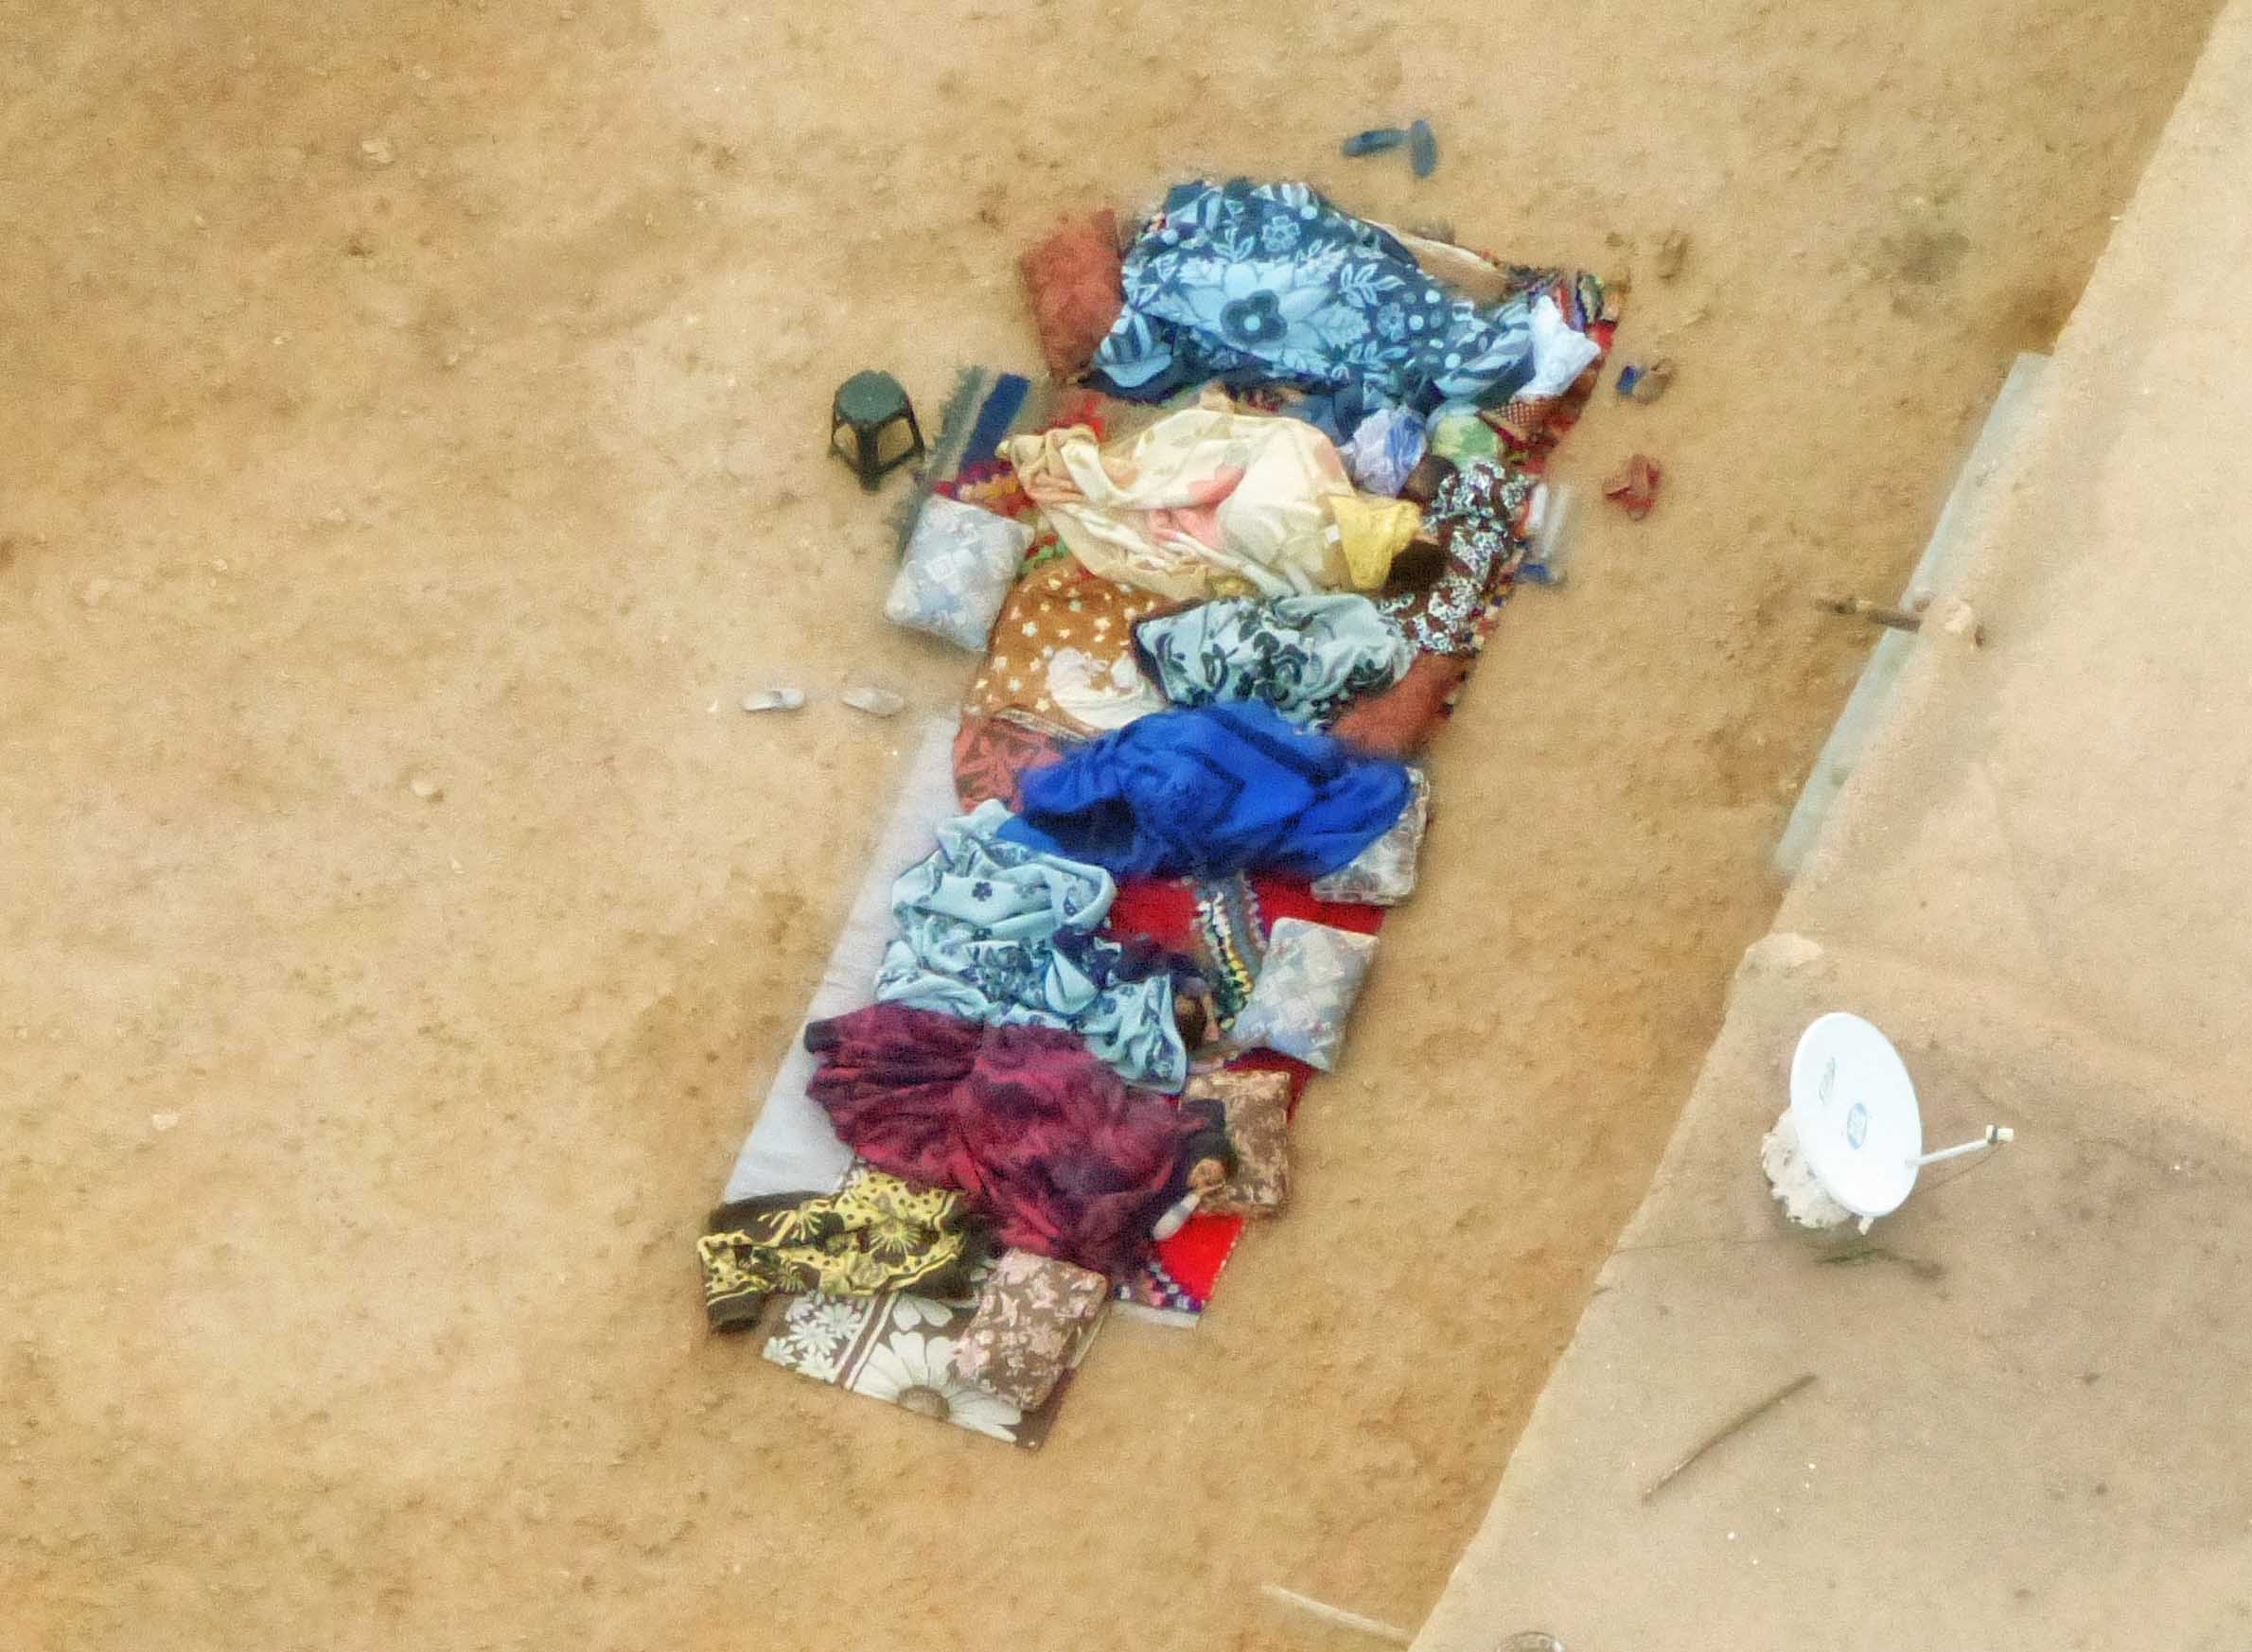 Aerial view of people sleeping under colourful fabrics